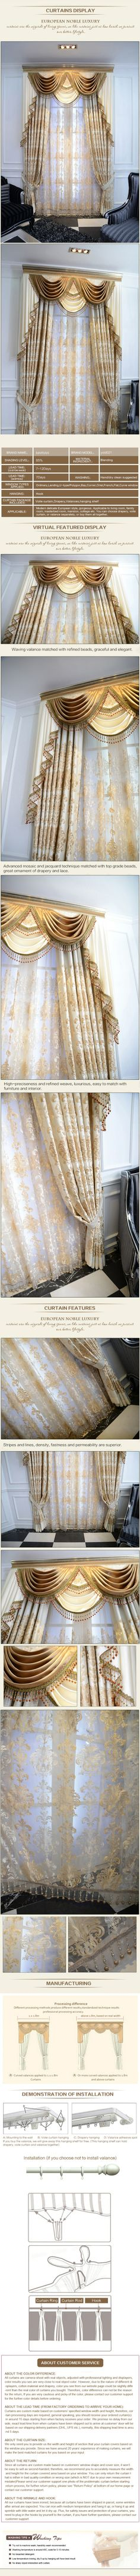 luxurious window curtain - Marian $161 (55% off)